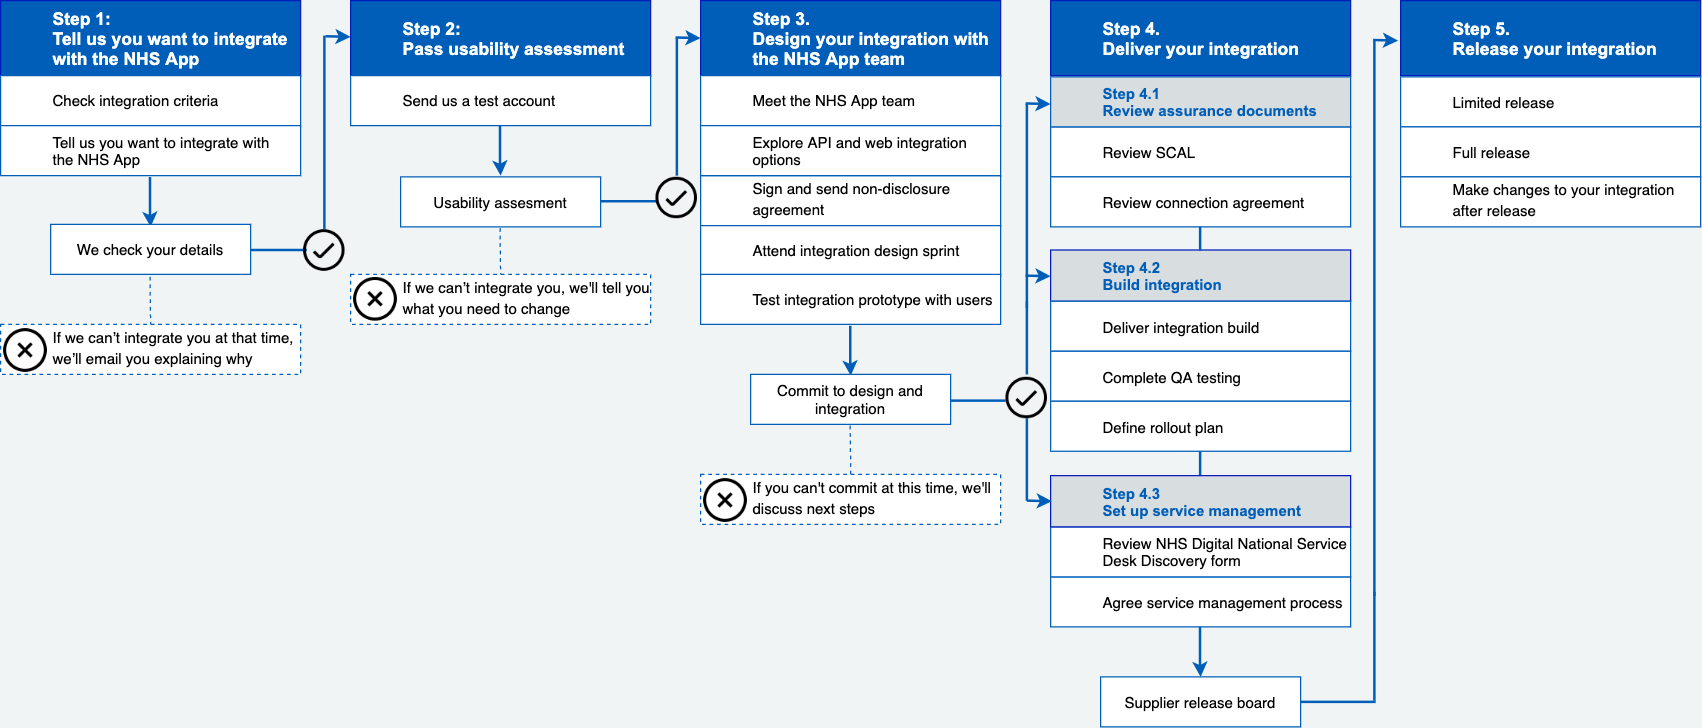 Diagram providing an overview of the NHS App integration process.